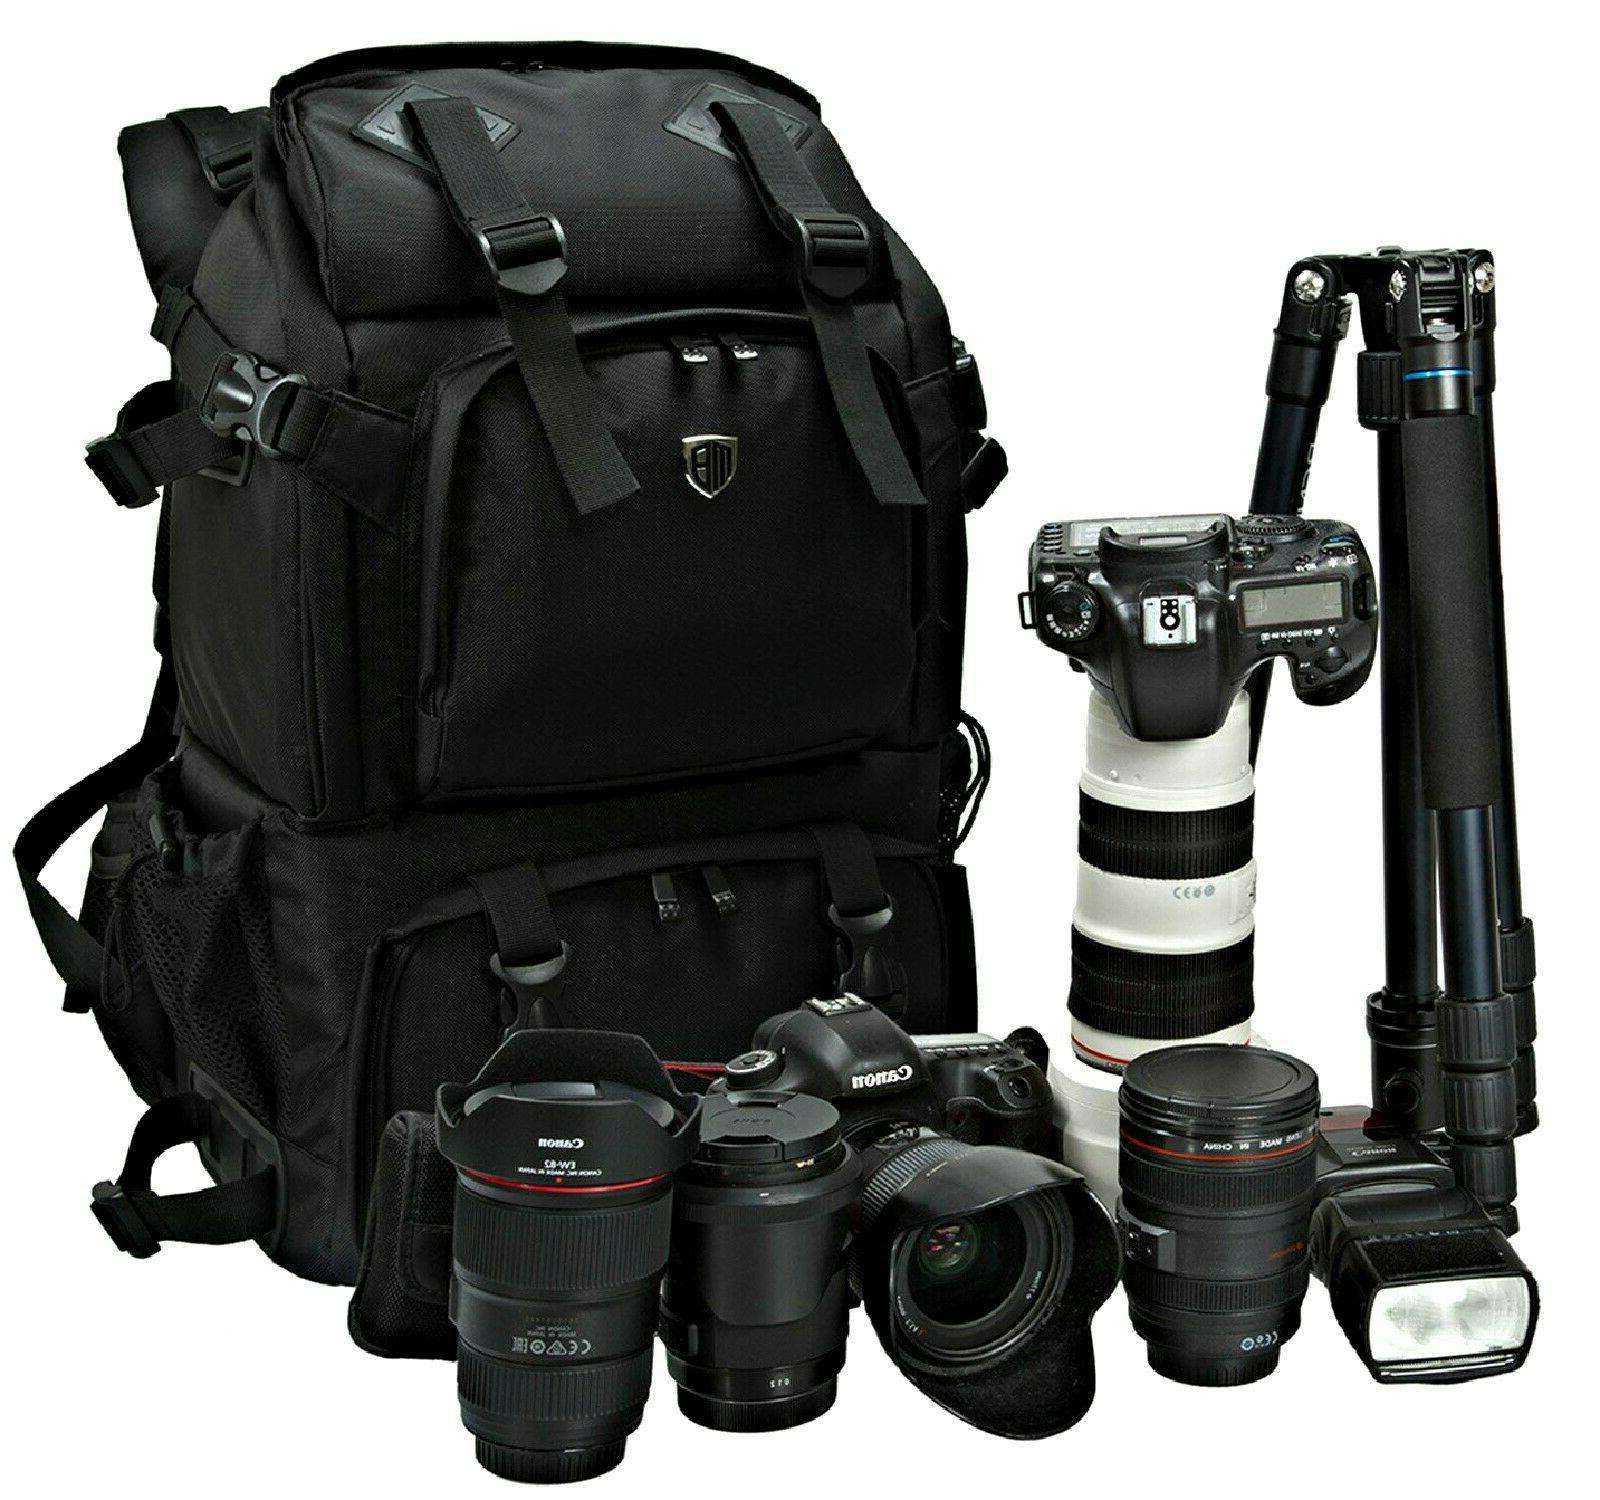 BAGSMART Olympus / Photo / DSLR